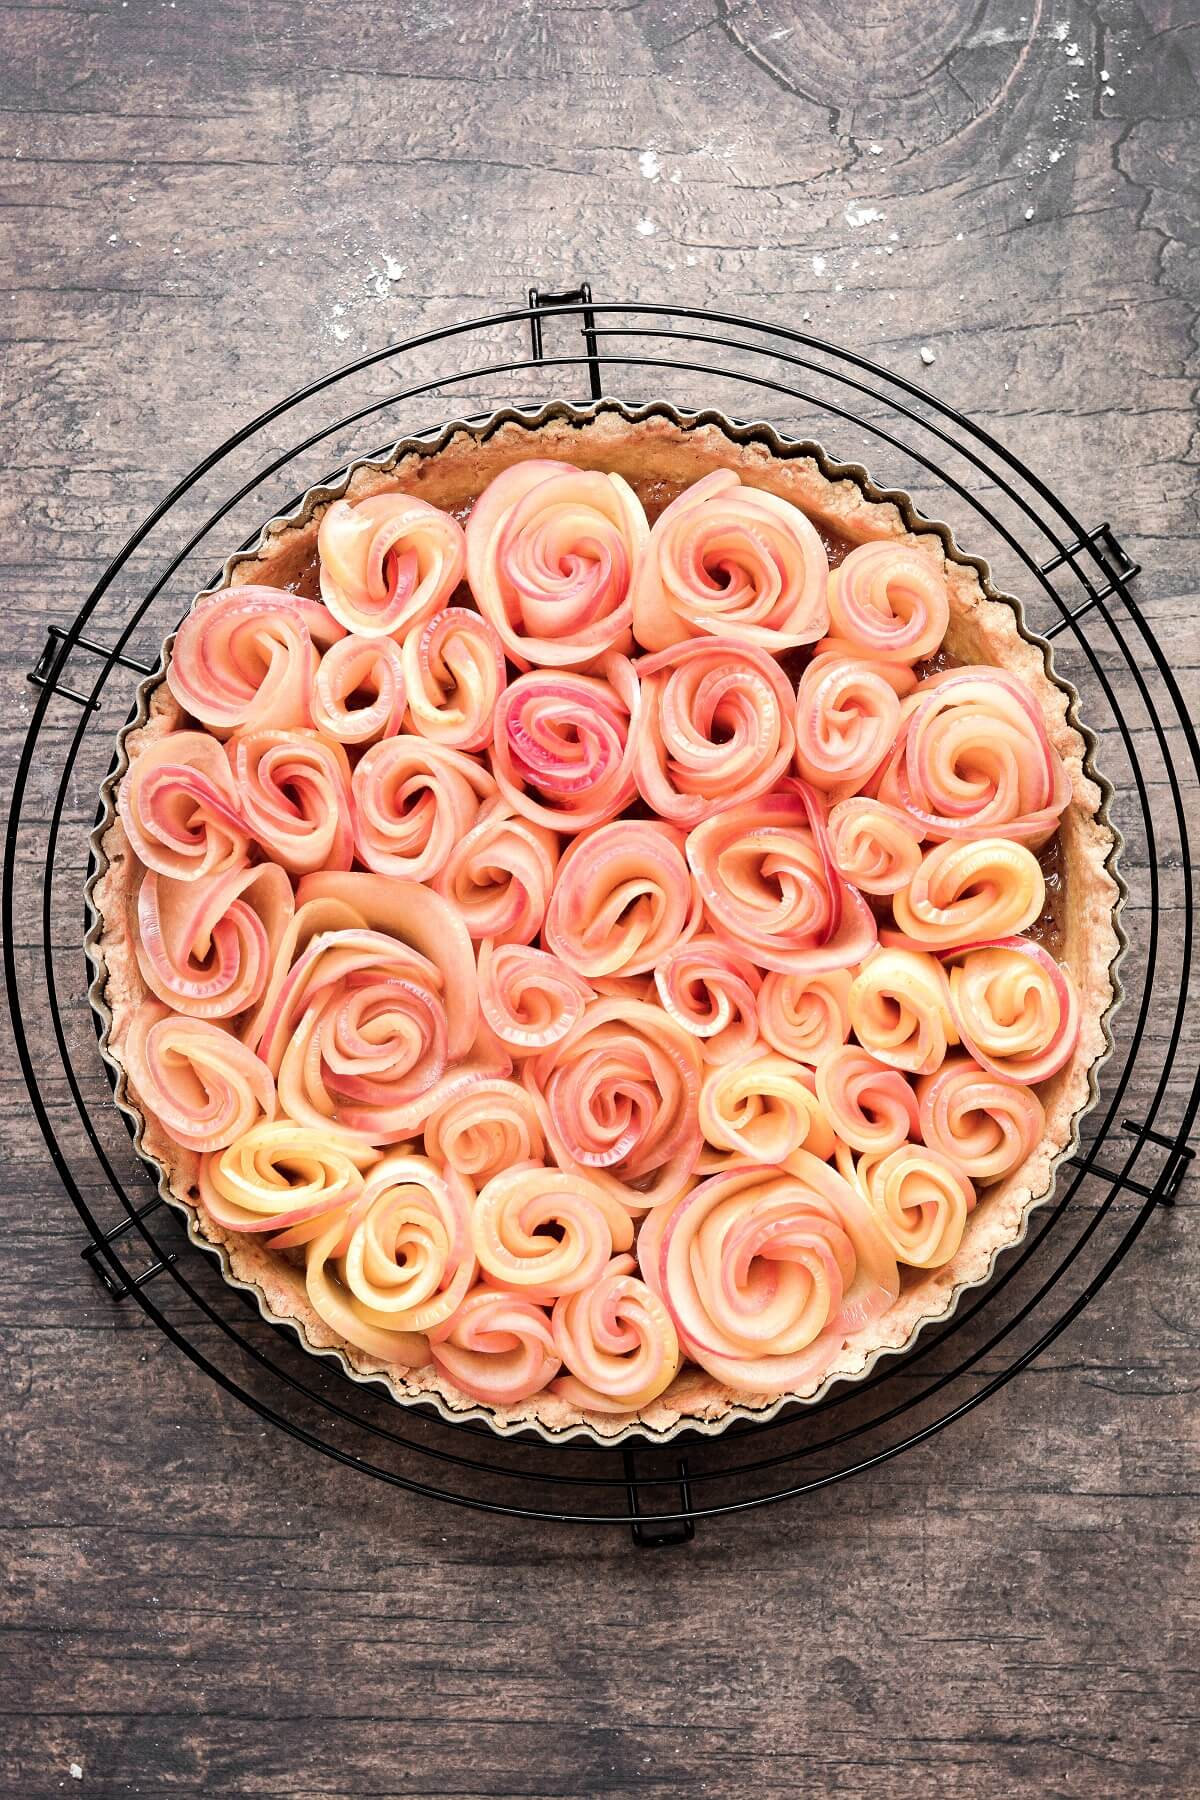 An apple rose tart ready to be baked.